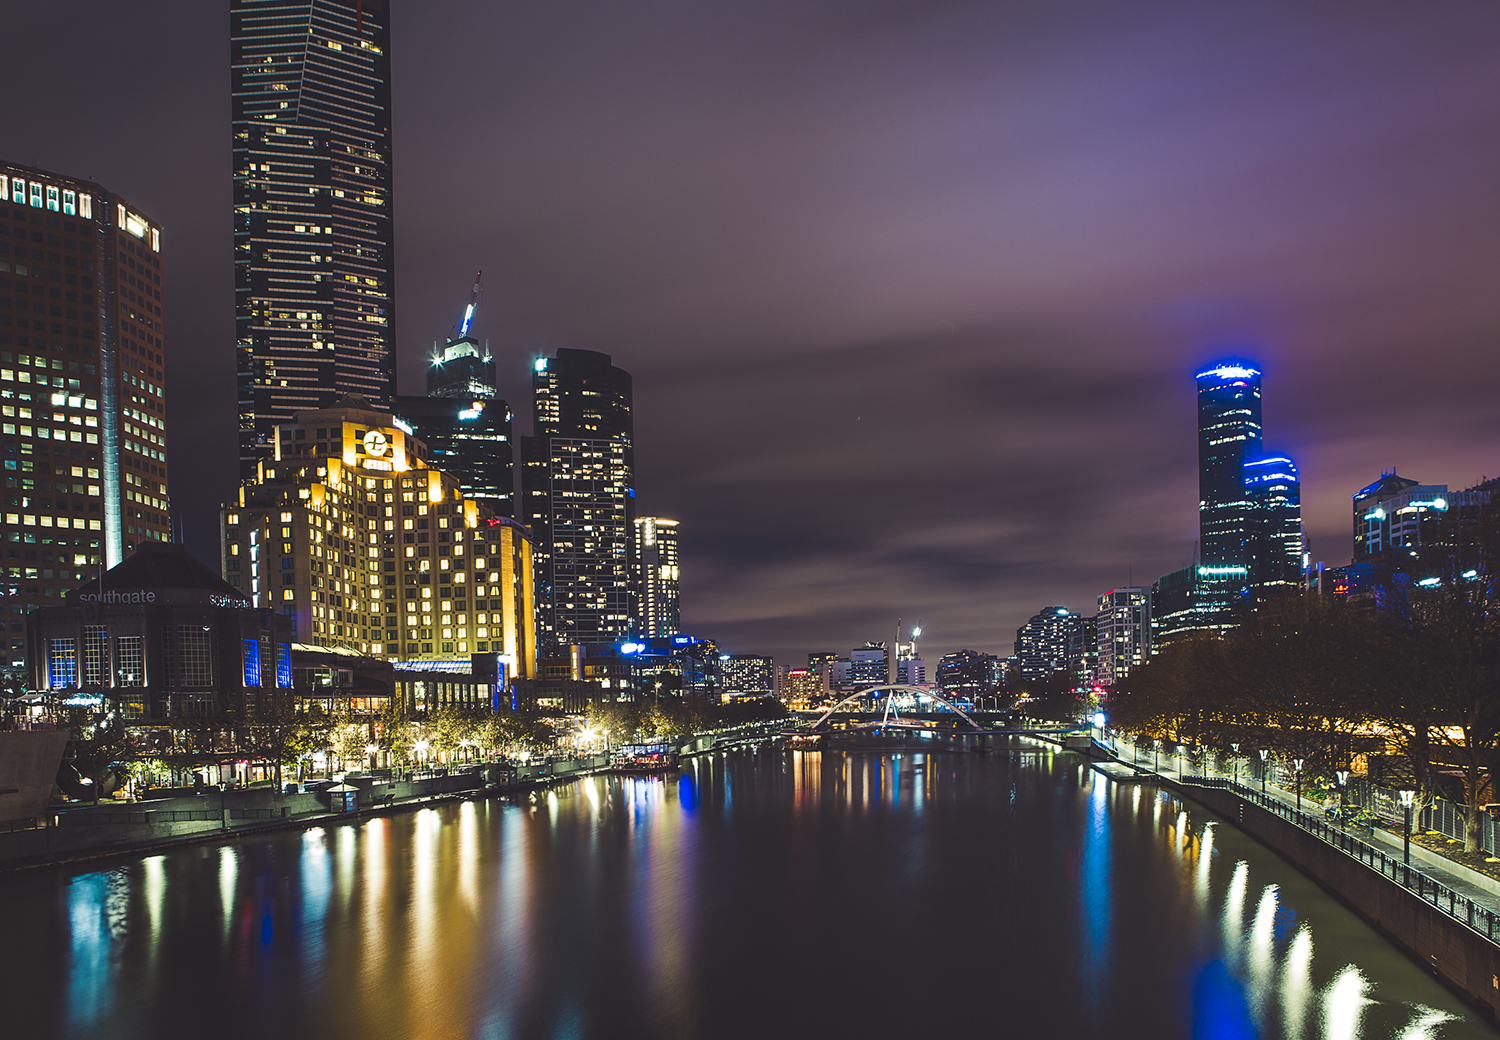 Night Photography Course - Get off auto mode and shoot in manual mode the cityscape. Control ISO, Shutter Speed & Aperture creatively. Master Composition and walk away with the confidence to shoot in low light.Price: $99.Approx. 3 hours